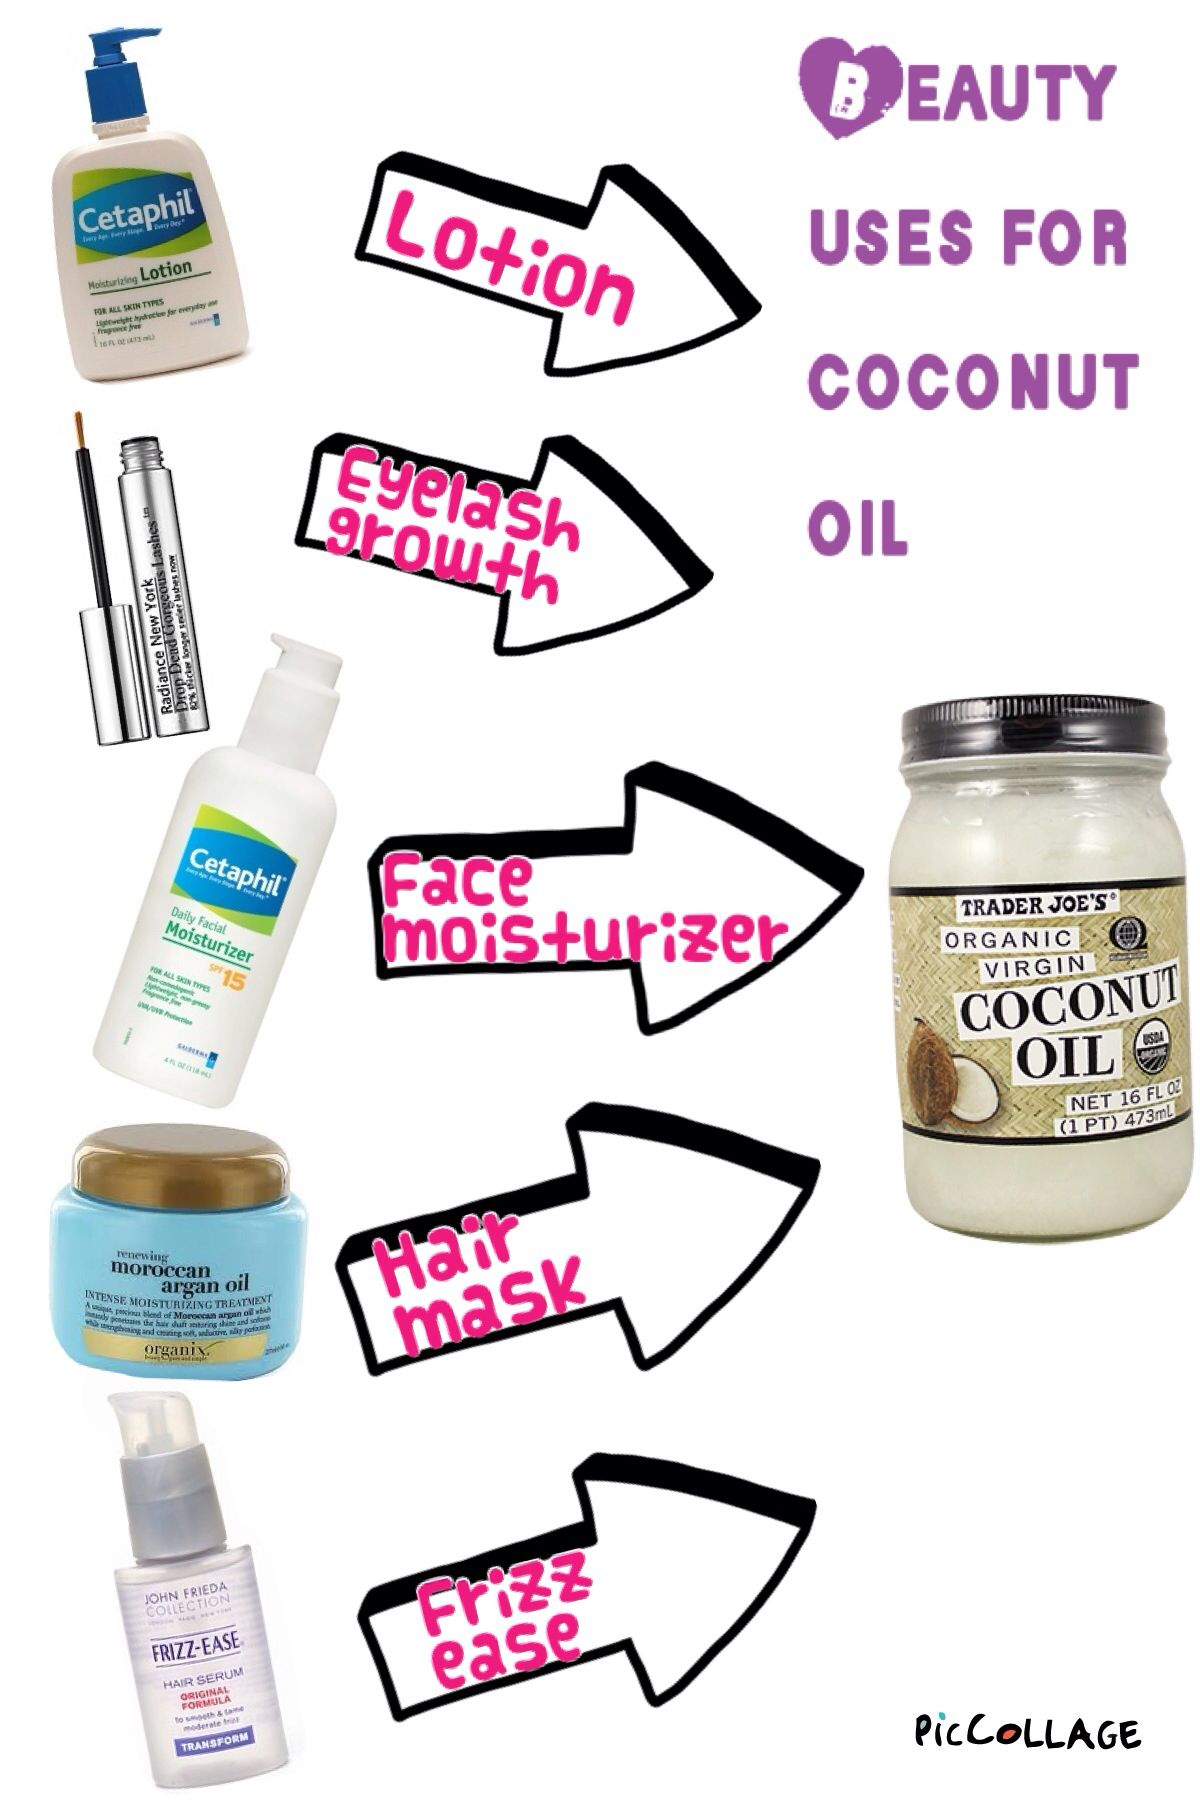 14 surprising uses for coconut oil Luxury makeup remover